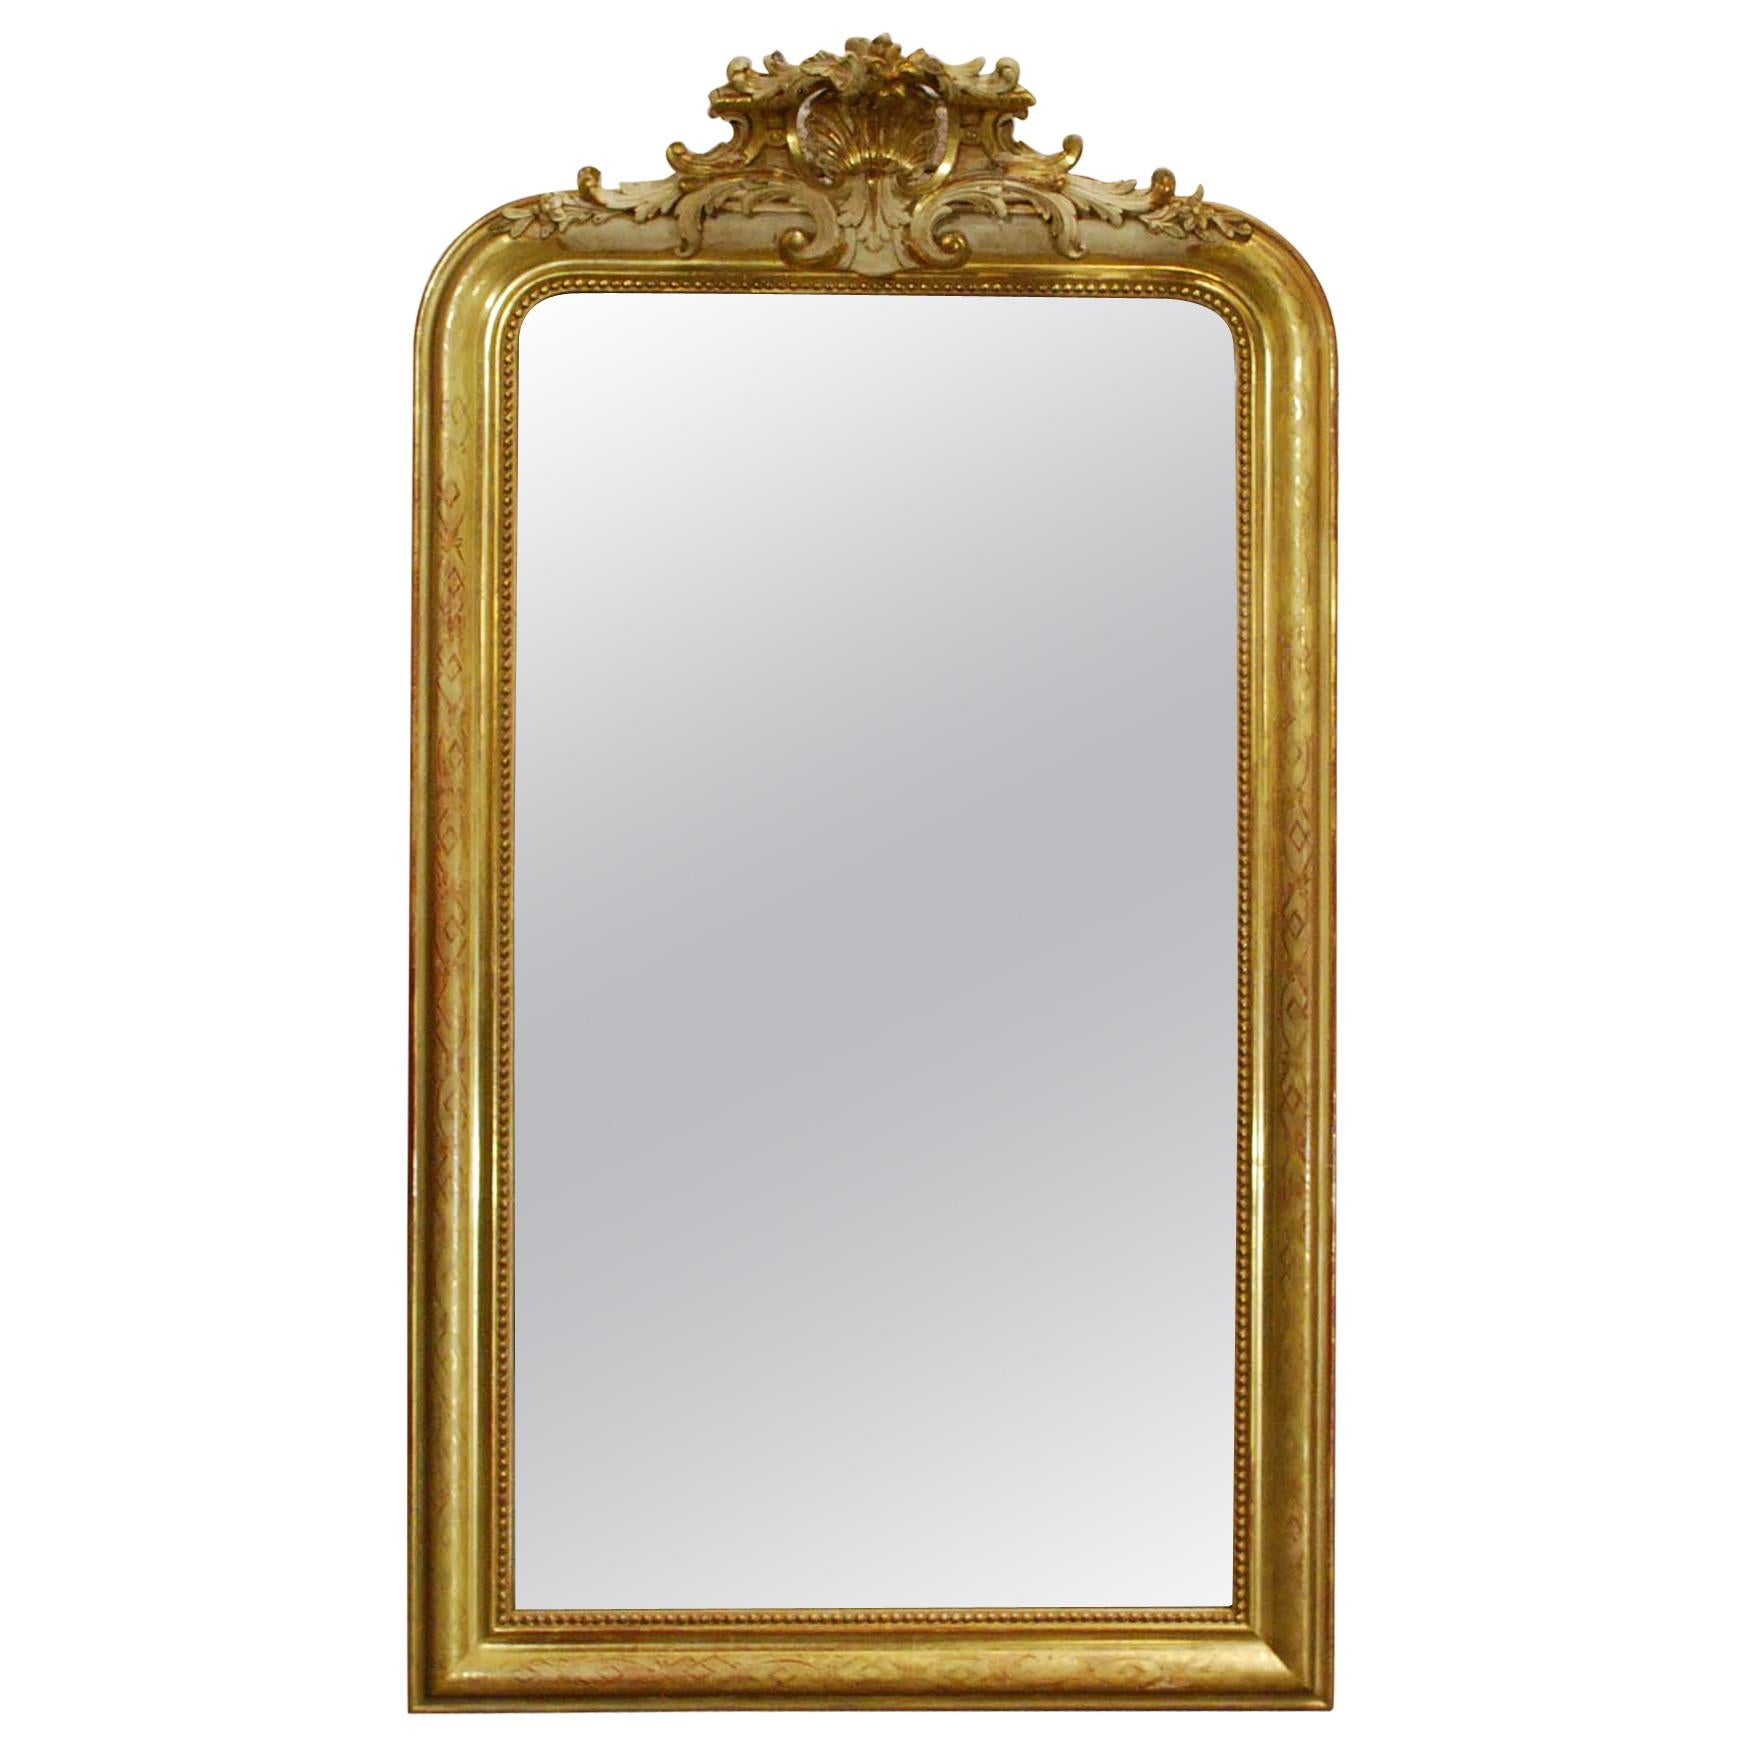 Antique 19th Century Gold Leaf Gilt French Louis Philippe Mirror with Crest